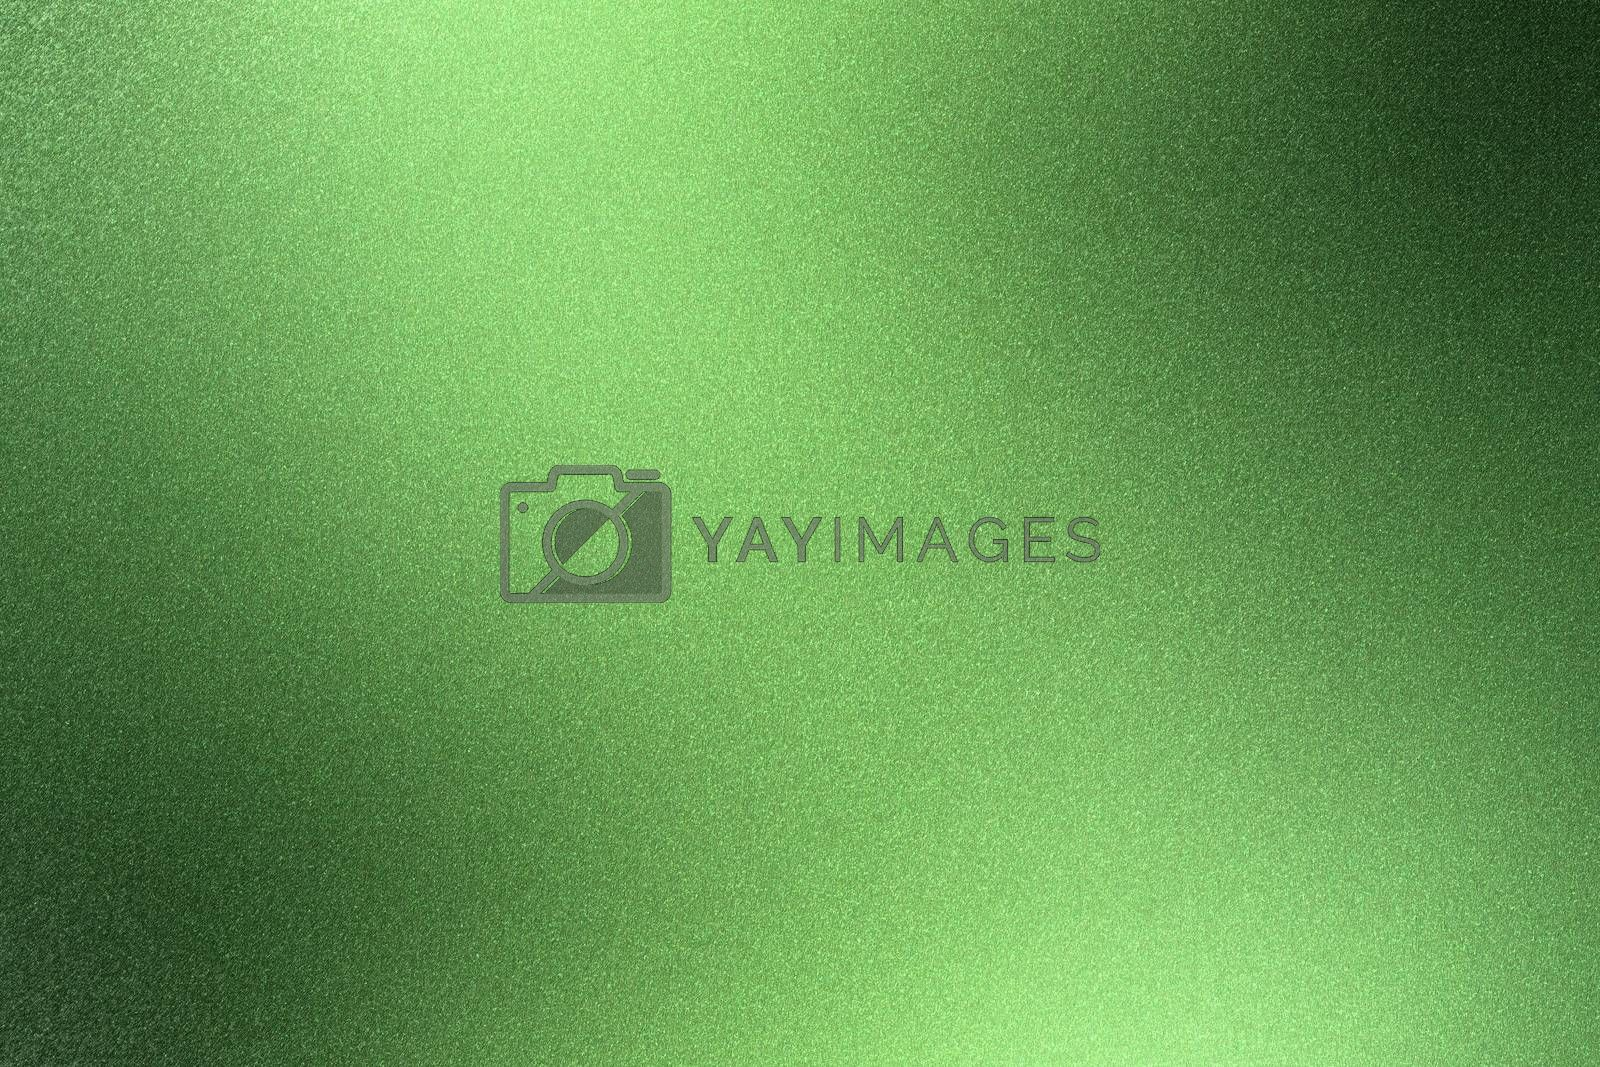 Glowing rough green metal wall surface, abstract texture background by mouu007